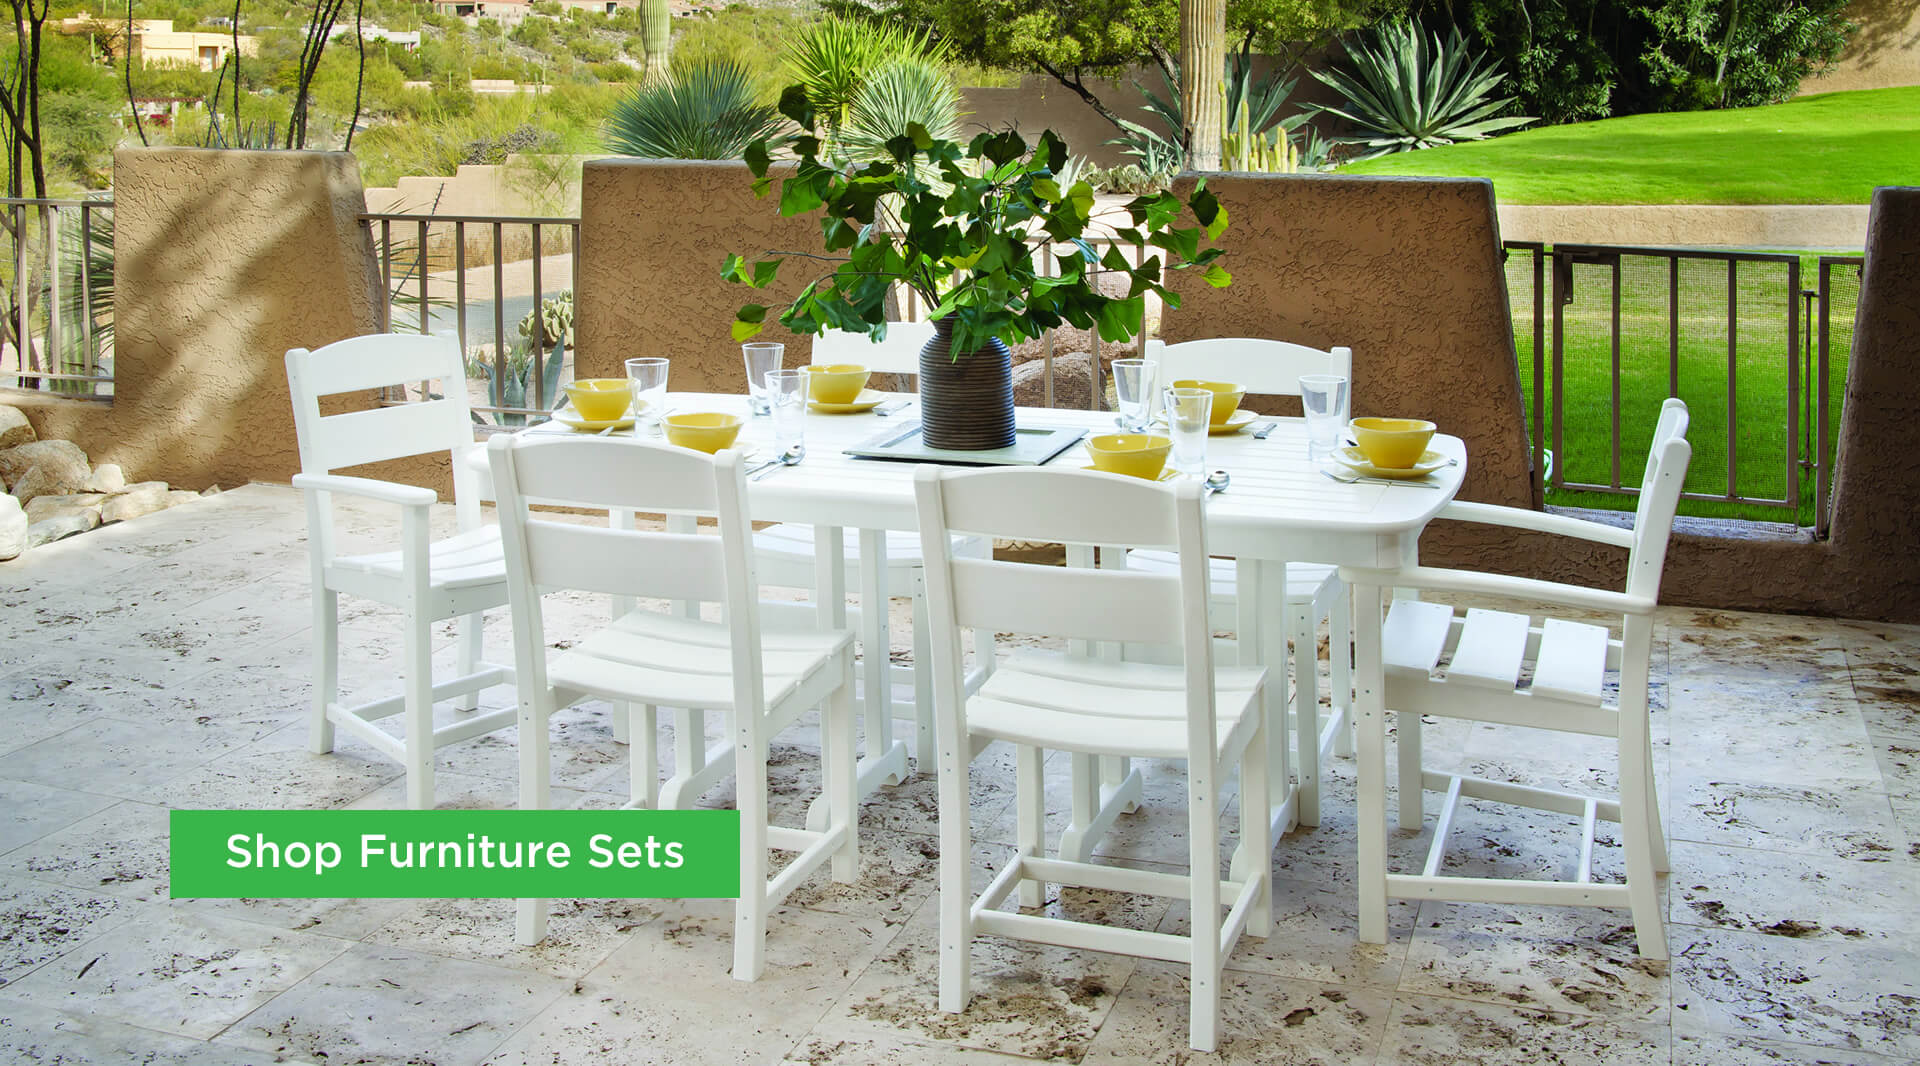 Shop Furniture Sets